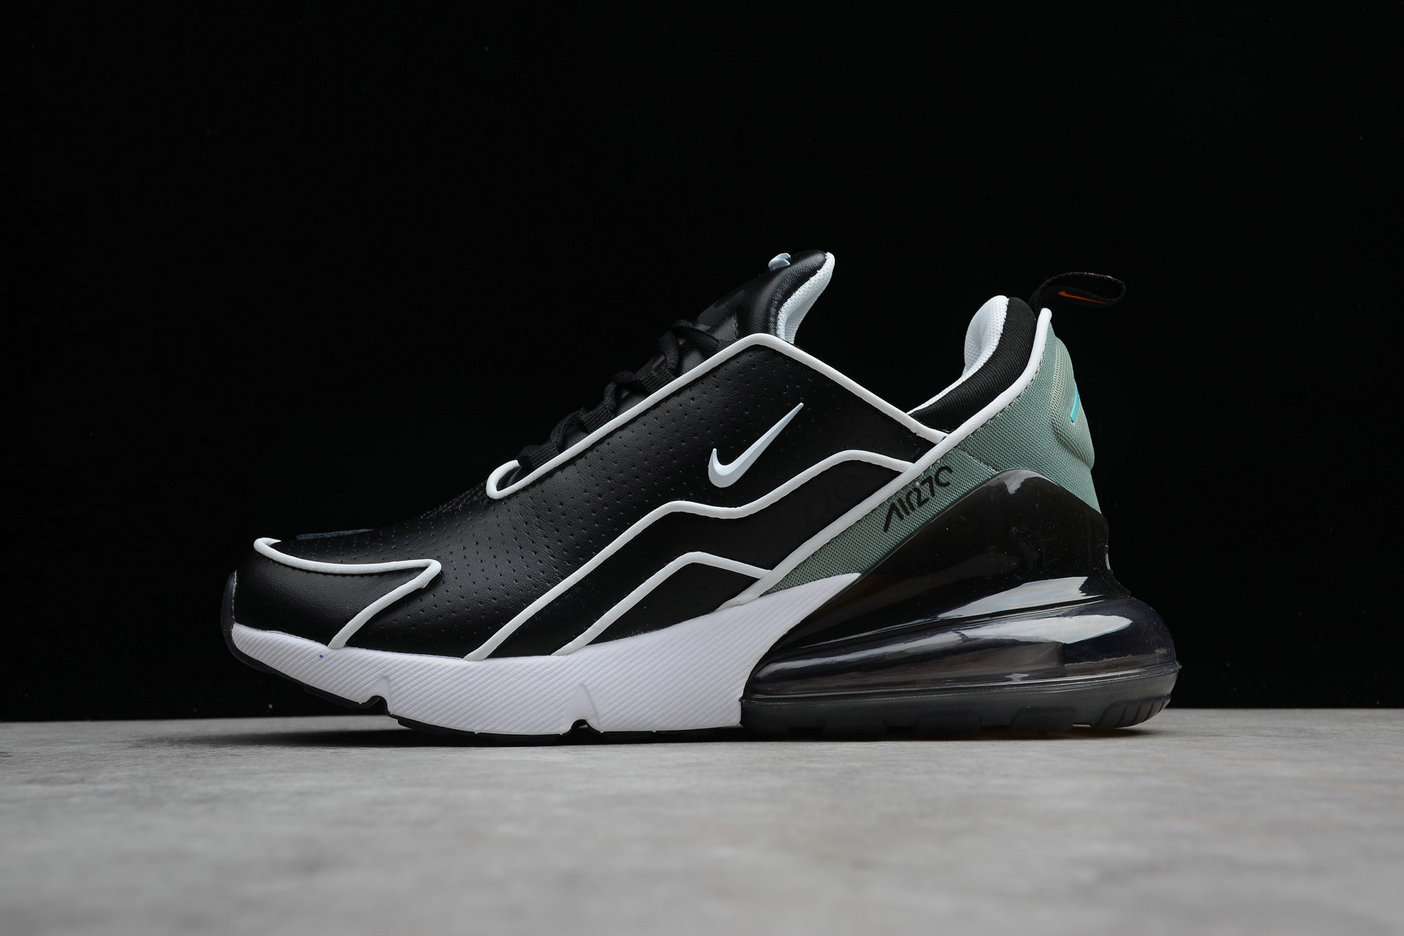 Cheap Wholesale Nike Air Max 270 Flyknit AH8060-001 Black Charcoal Noir Charbon- www.wholesaleflyknit.com